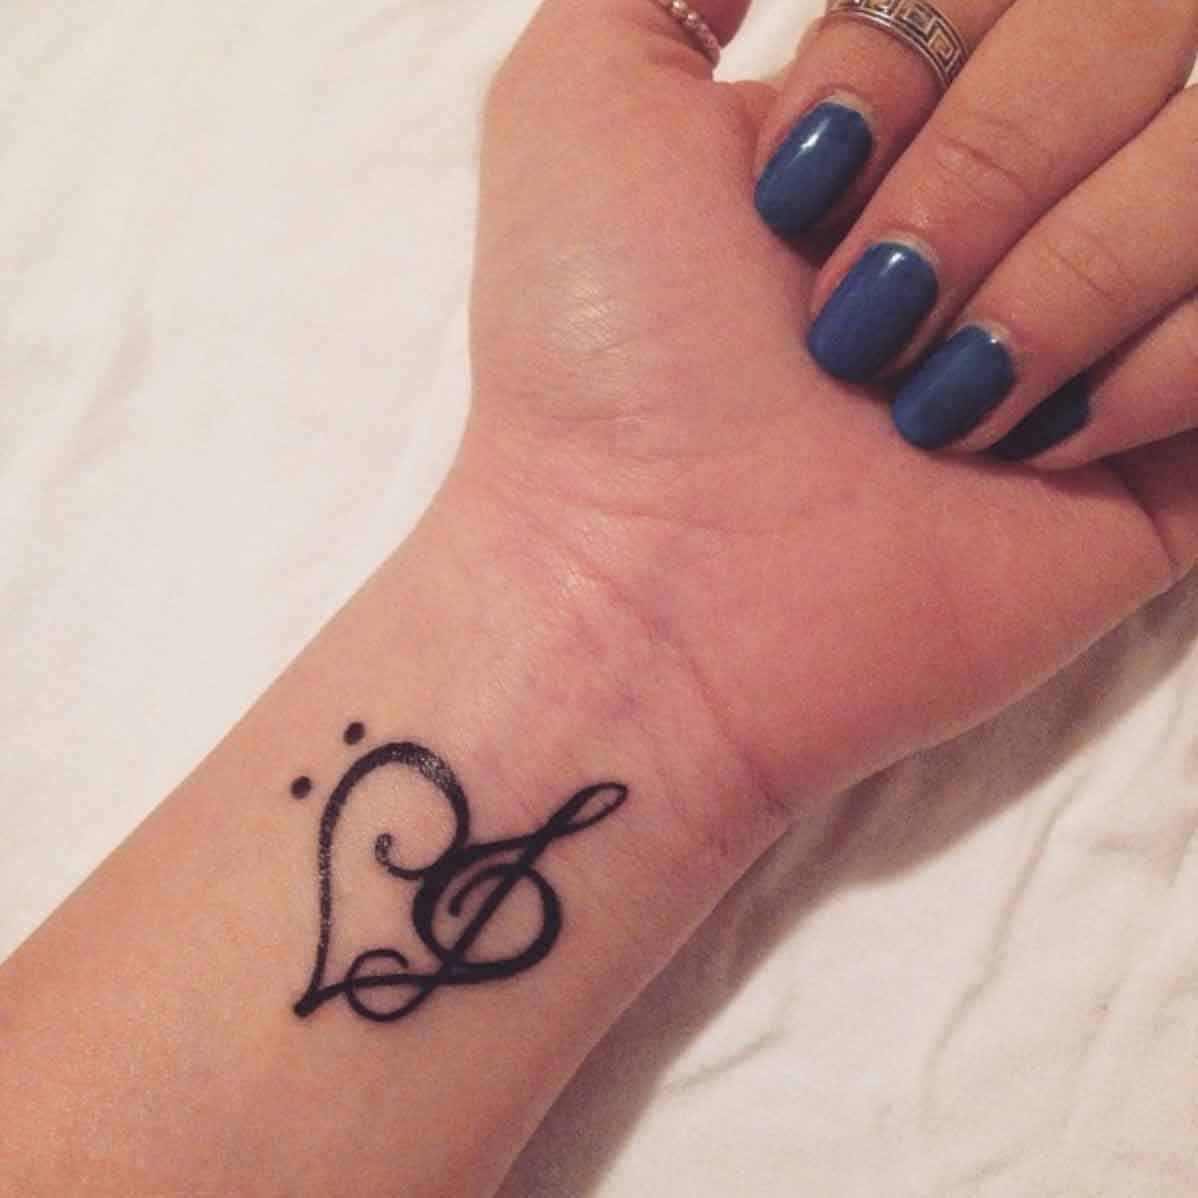 little wrist tattoo of a bass clef and a treble clef creating a rh pinterest com treble clef heart tattoo meaning treble clef love heart tattoo